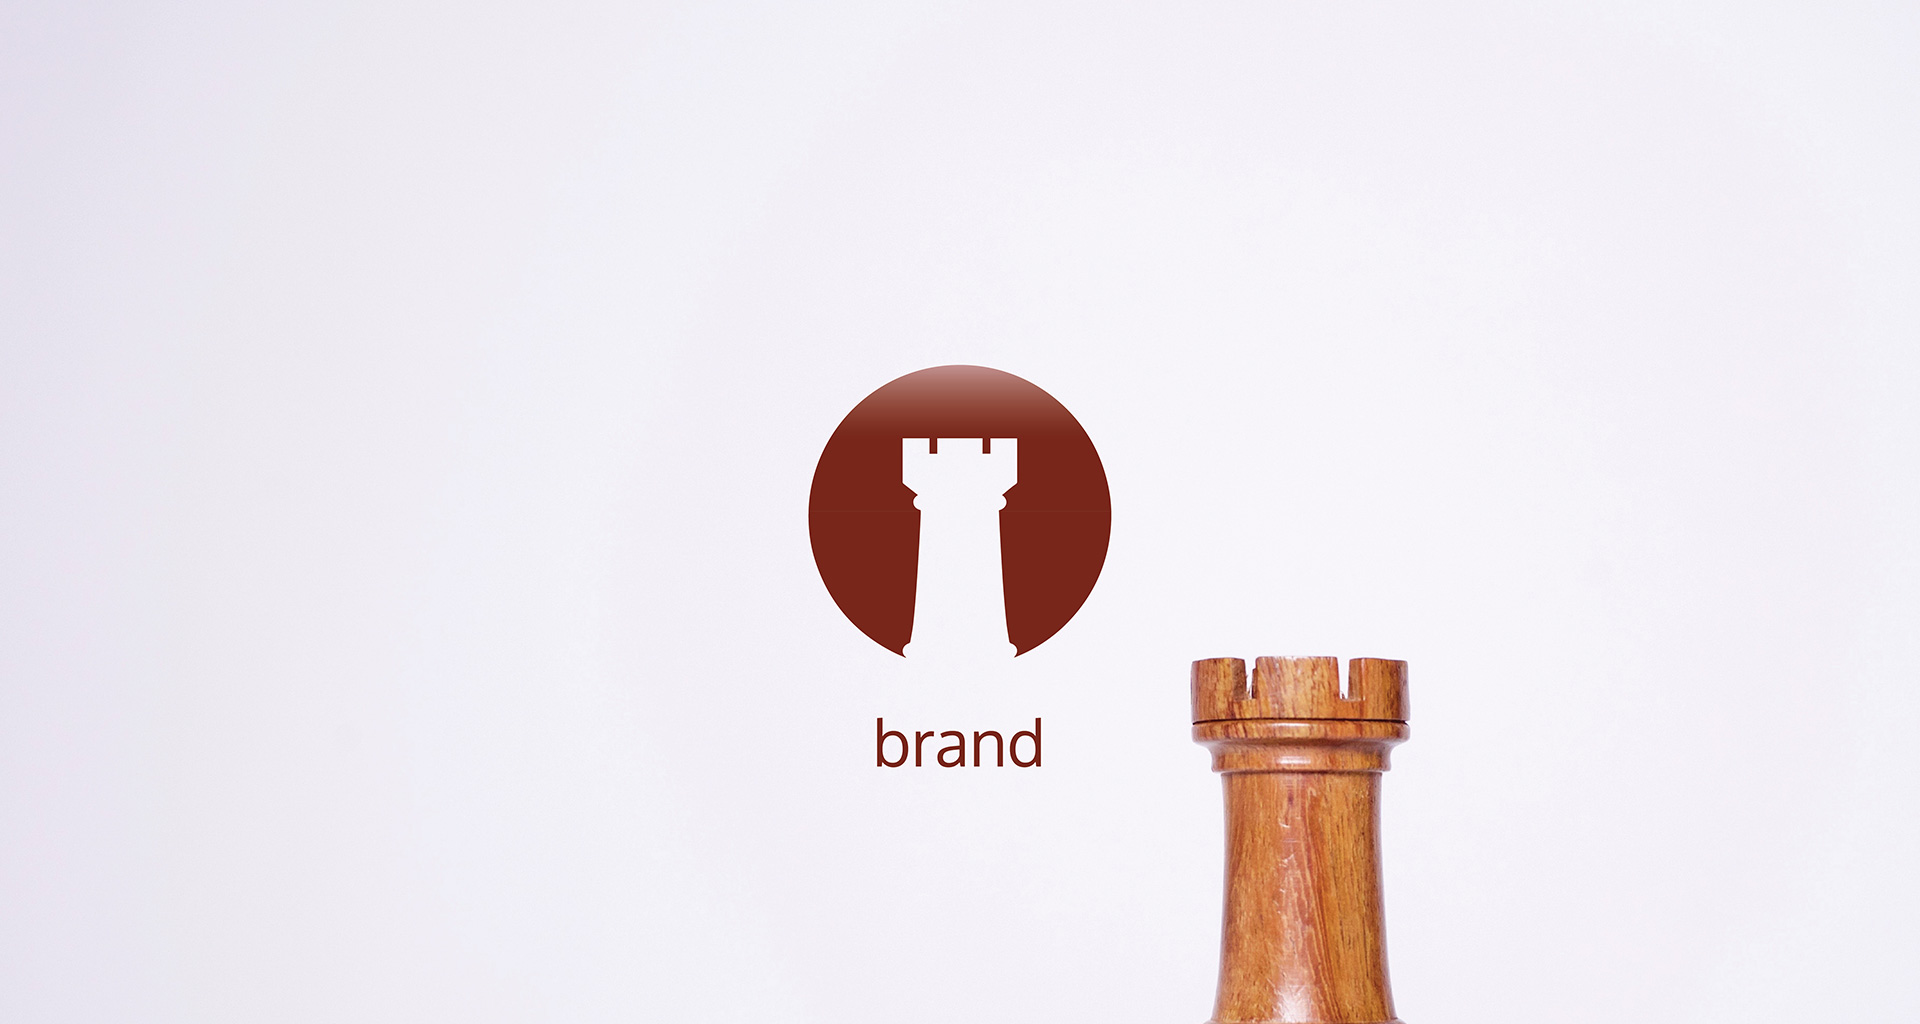 Brand icon and tower chess piece